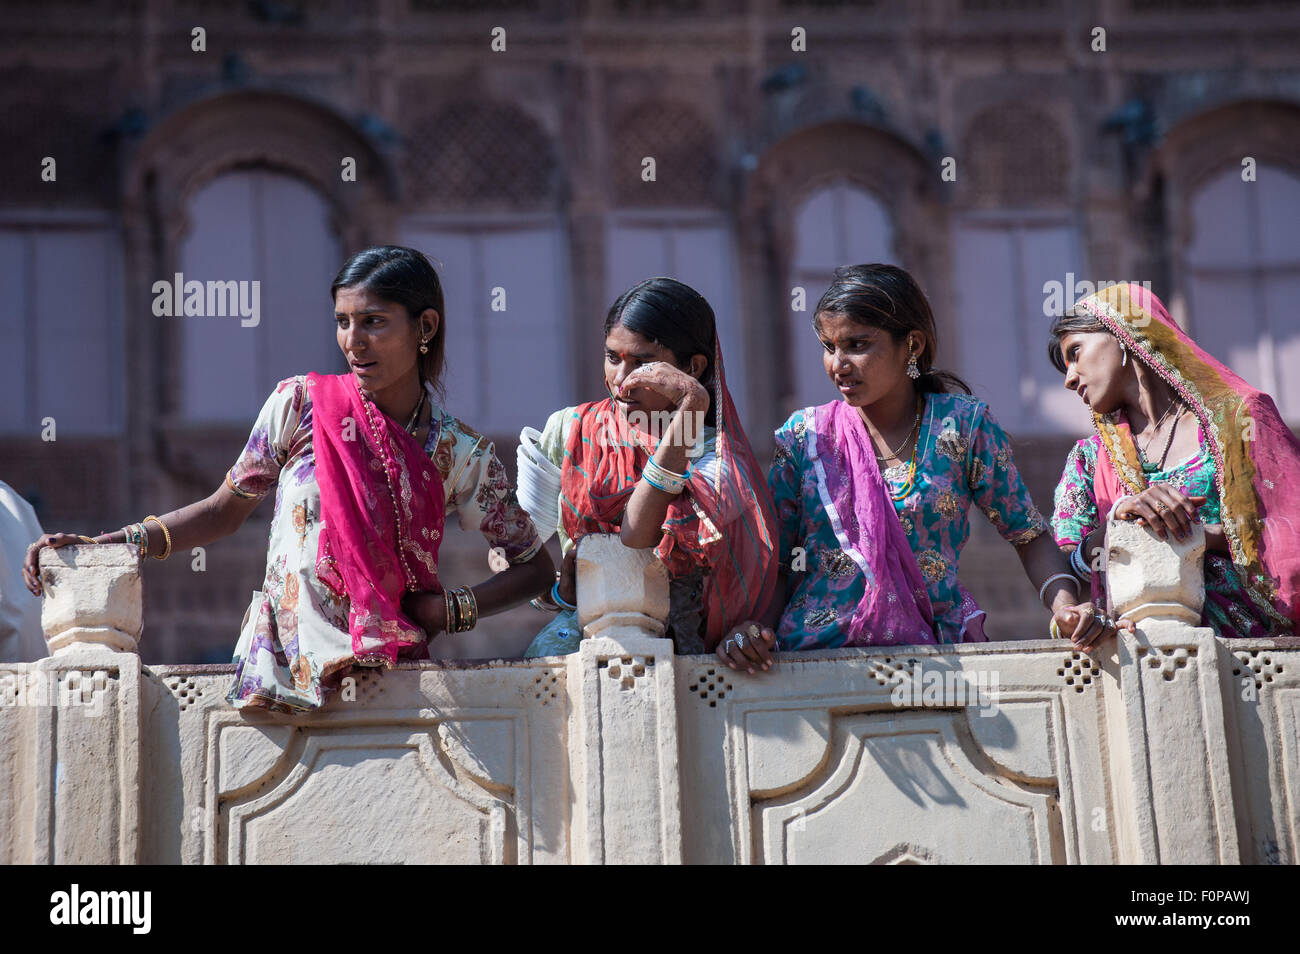 Jodhpur, India. Mehrangarh sandstone hill fort of the Marwar rulers. Four women in traditional clothes, watching. - Stock Image